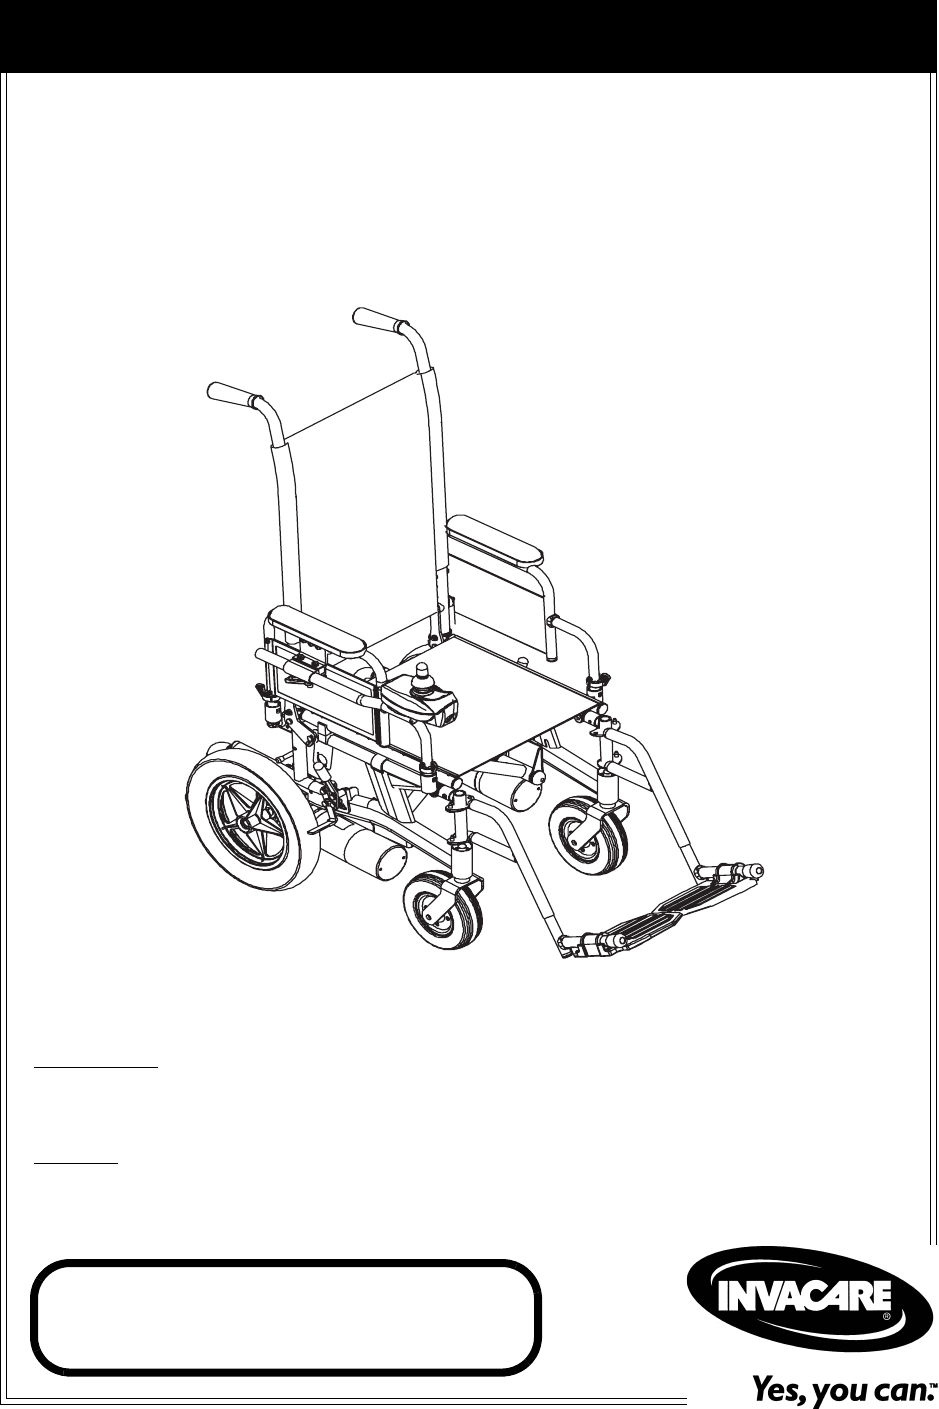 Invacare Mobility Aid Nutron Series User Guide